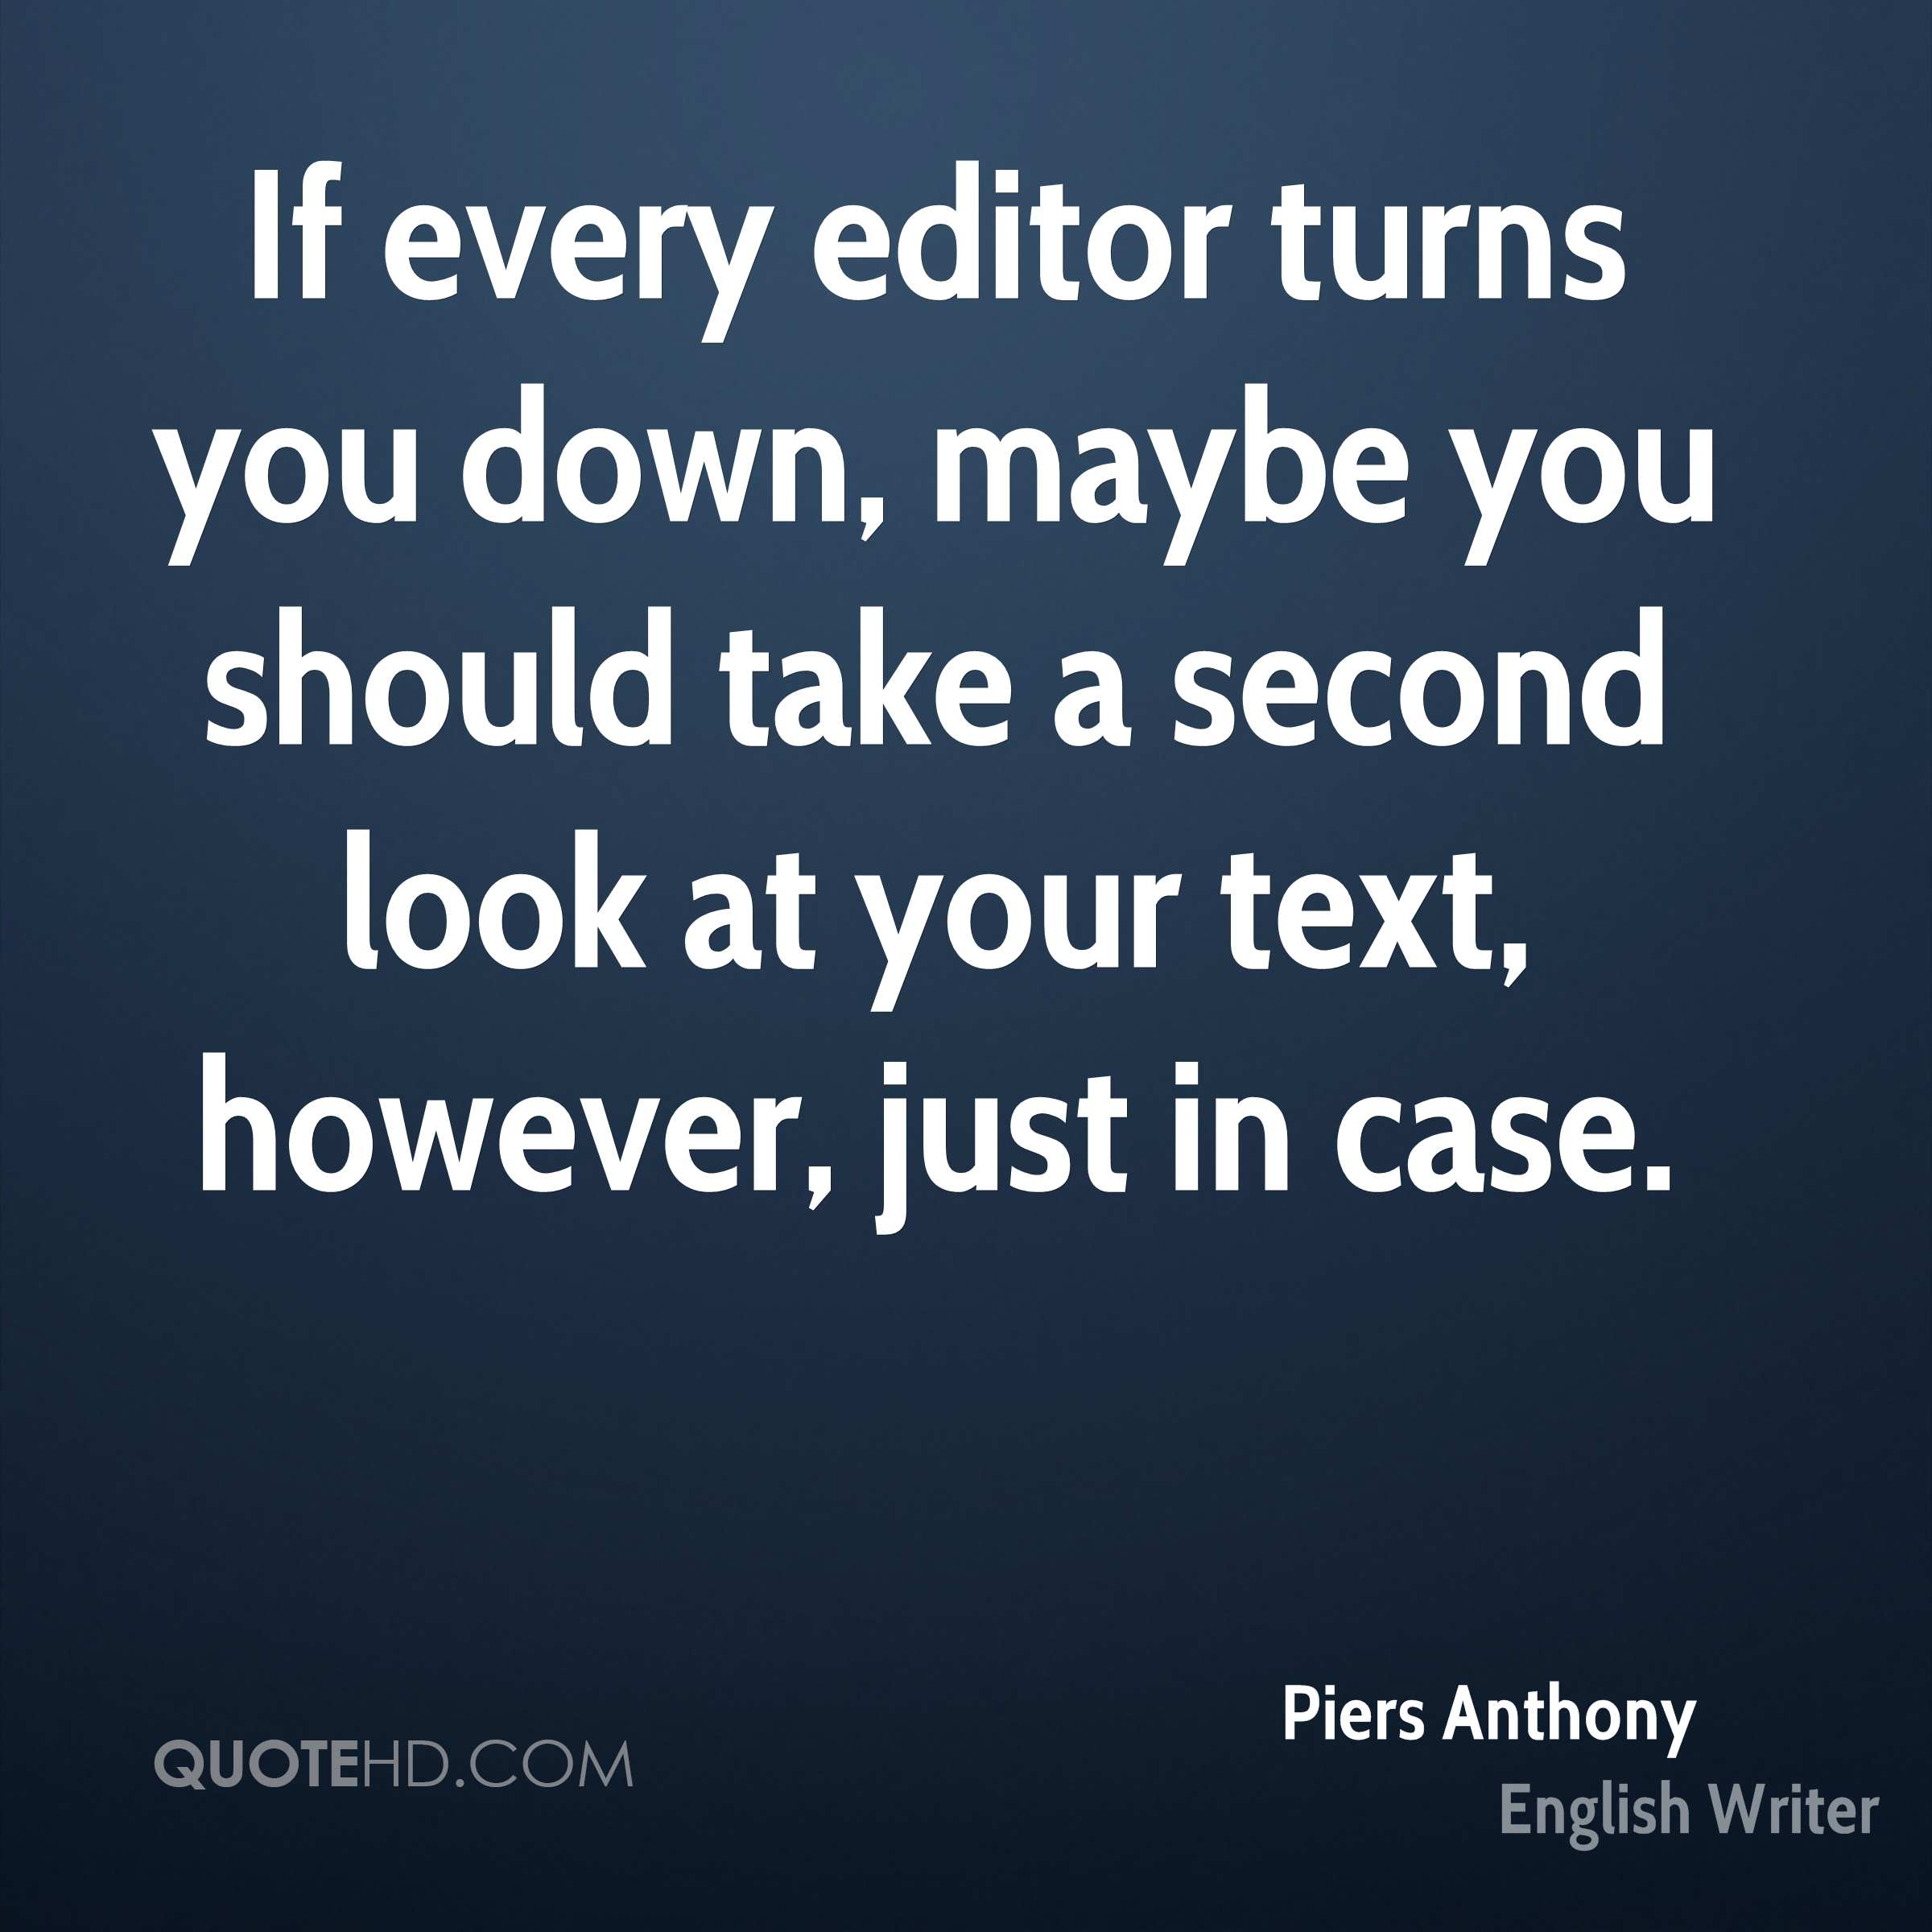 If every editor turns you down, maybe you should take a second look at your text, however, just in case.